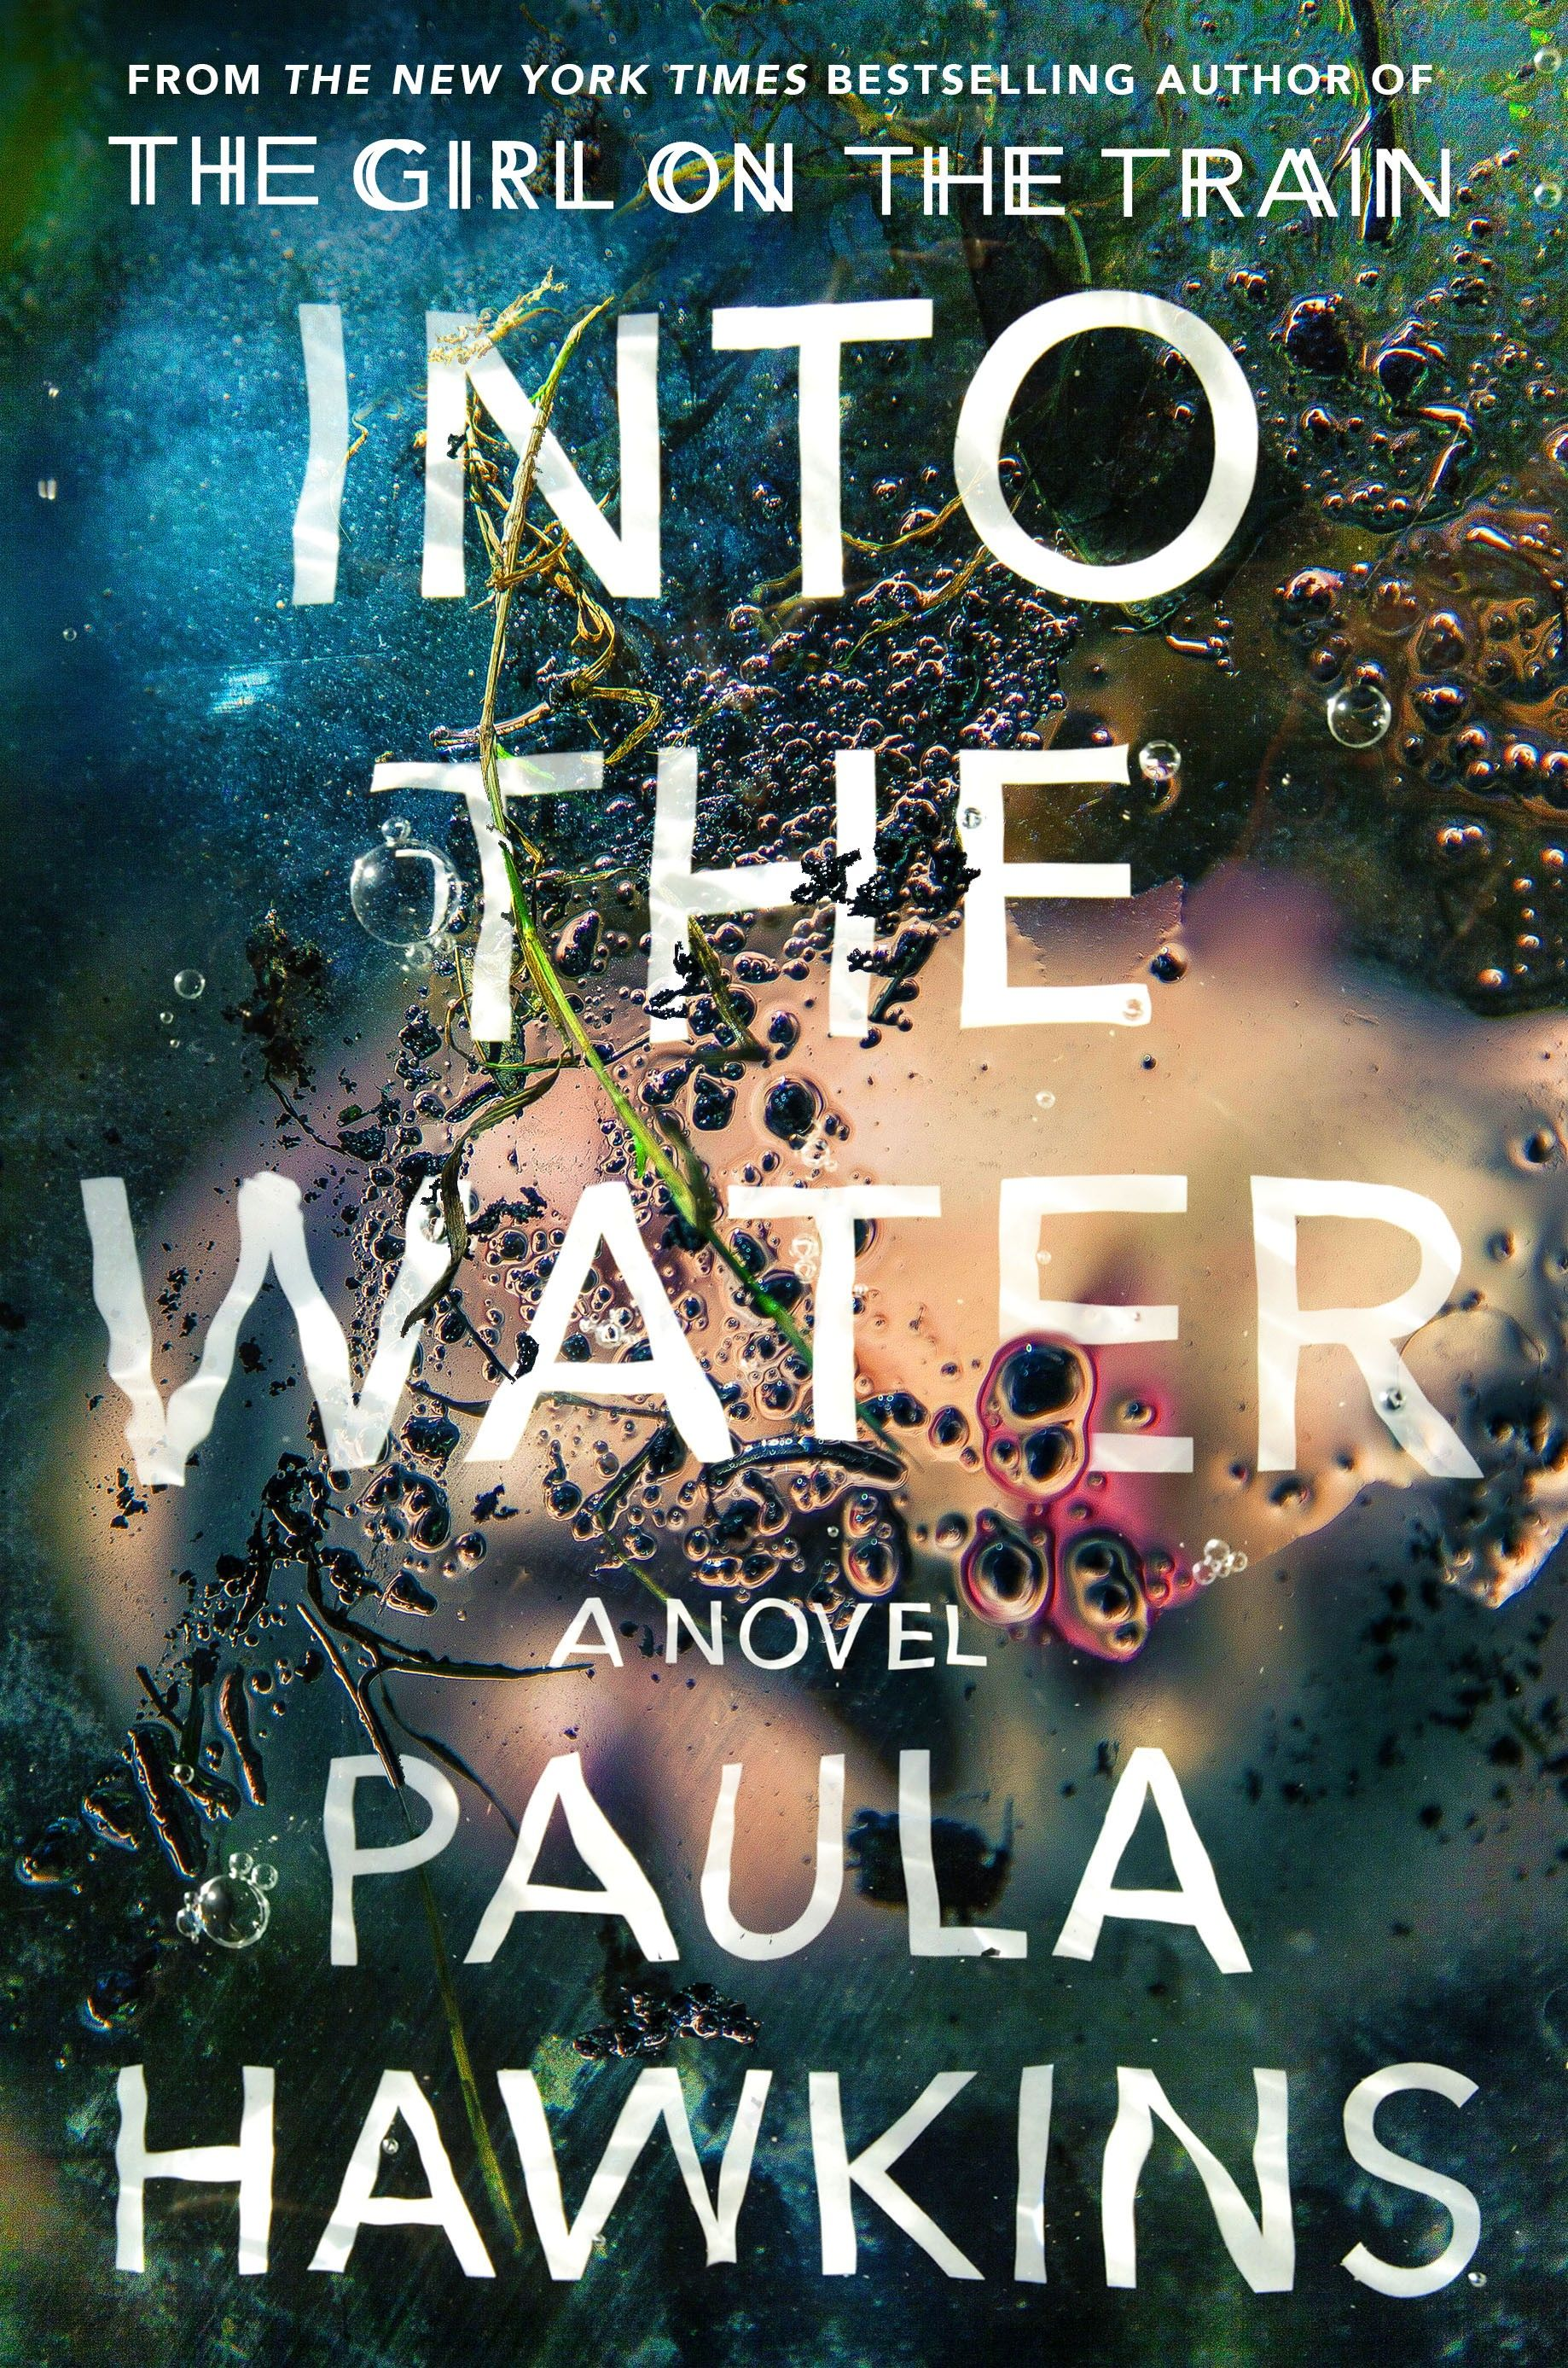 If you needed one more reason to fervently await spring fever, here you go: Paula Hawkins just announced that her follow-up to smash hit thriller The Girl on the Train will hit shelves May 2 of next year. Titled Into the Water, this forthcoming novel of psychological suspense is set in a small riverside town where the bodies of a woman and a teen girl are discovered a few days apart. The investigation that follows begins to uncover a complex connection between the two murders. Pre-Order Today!